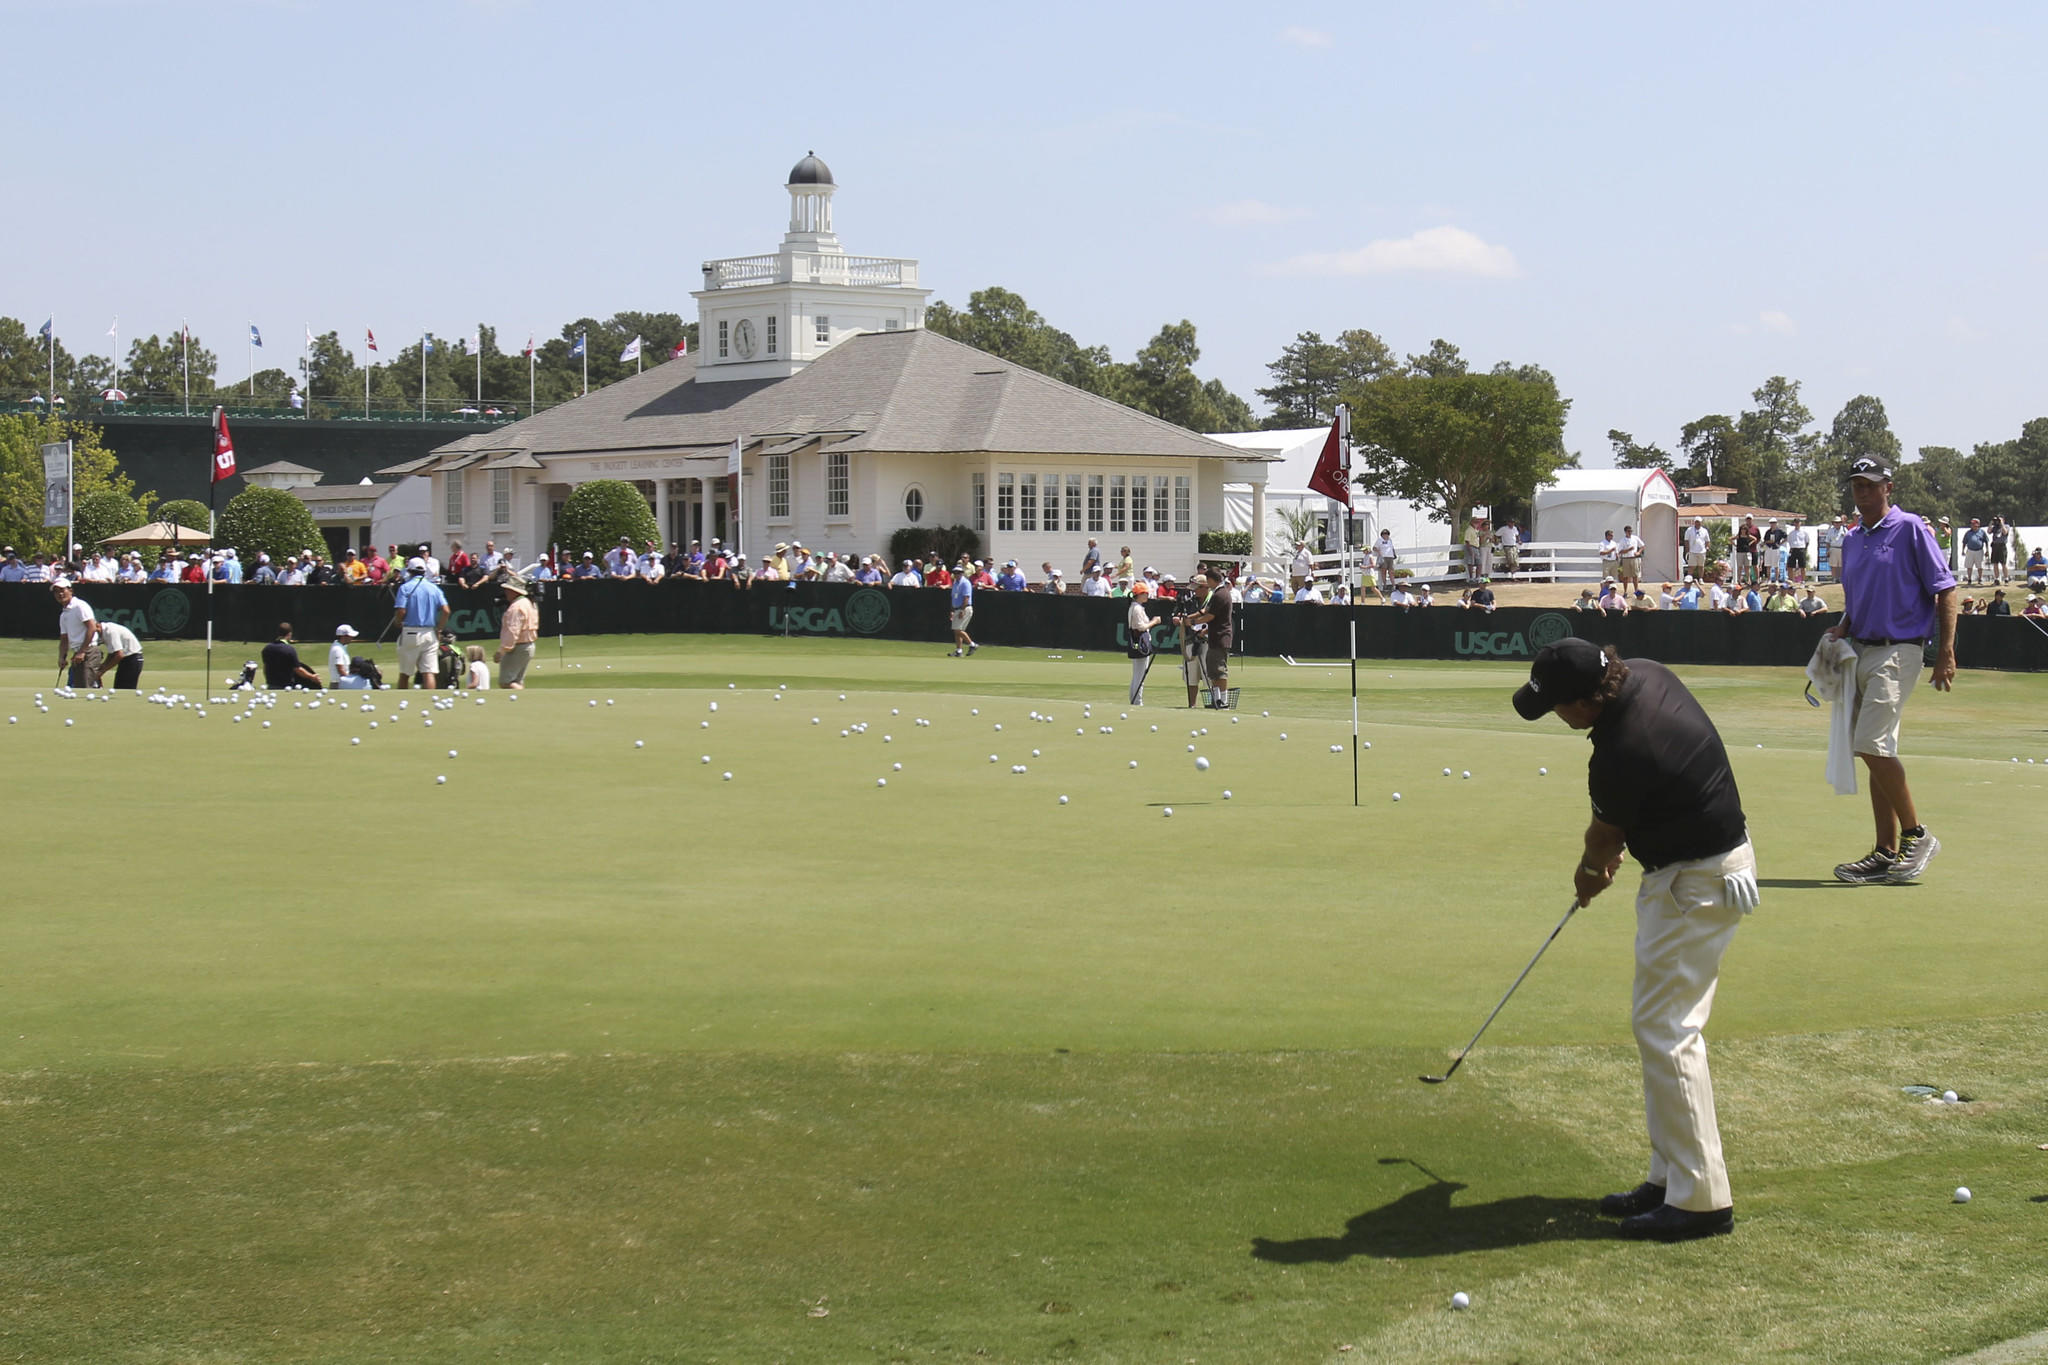 Phil Mickelson chips on the practice green during a practice round for the U.S. Open golf tournament at Pinehurst No. 2.